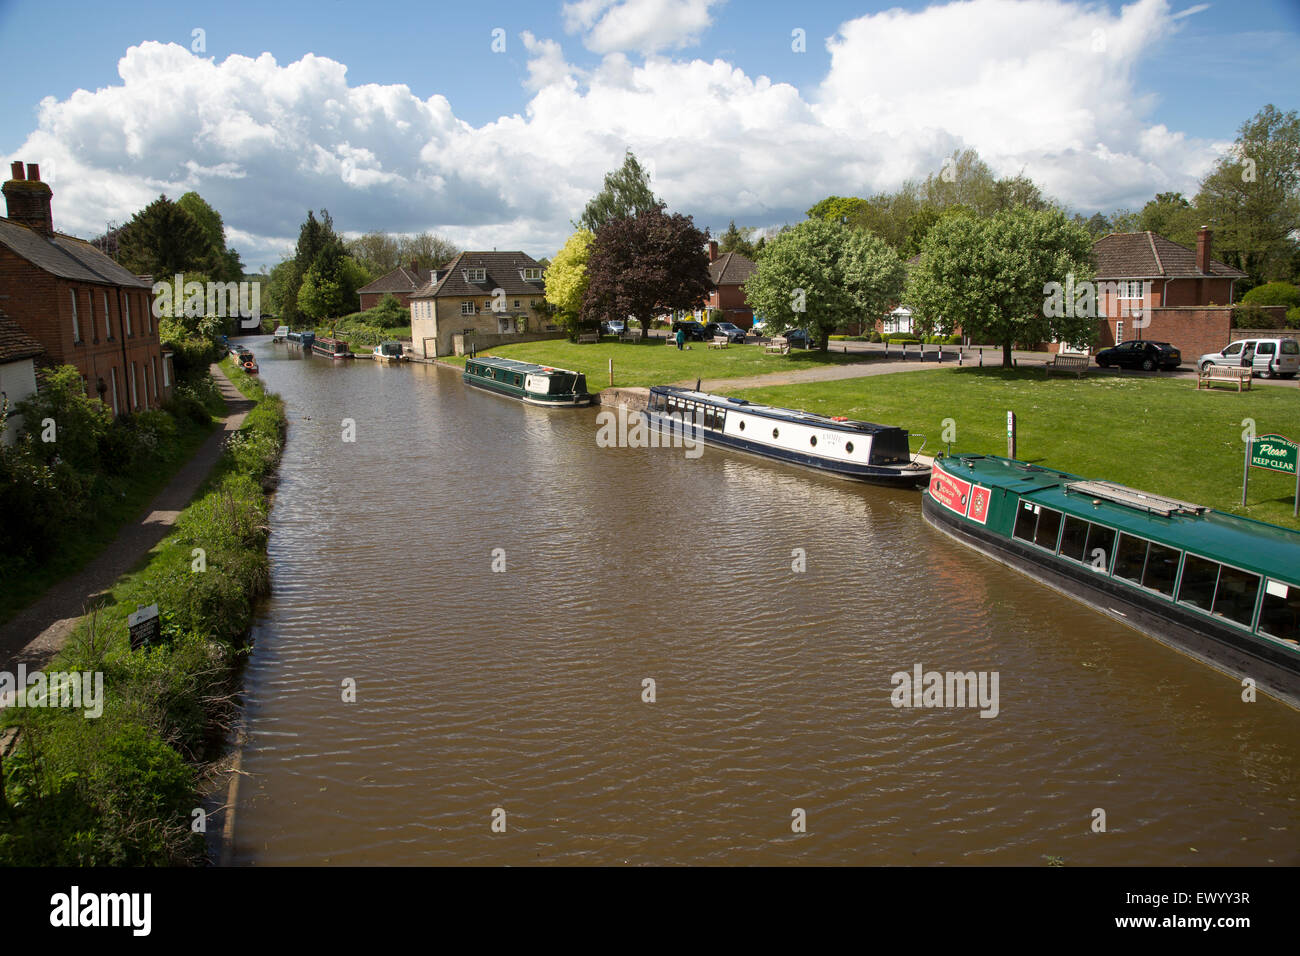 Narrow boats on the Kennet and Avon canal, Hungerford, Berkshire, England, UK - Stock Image